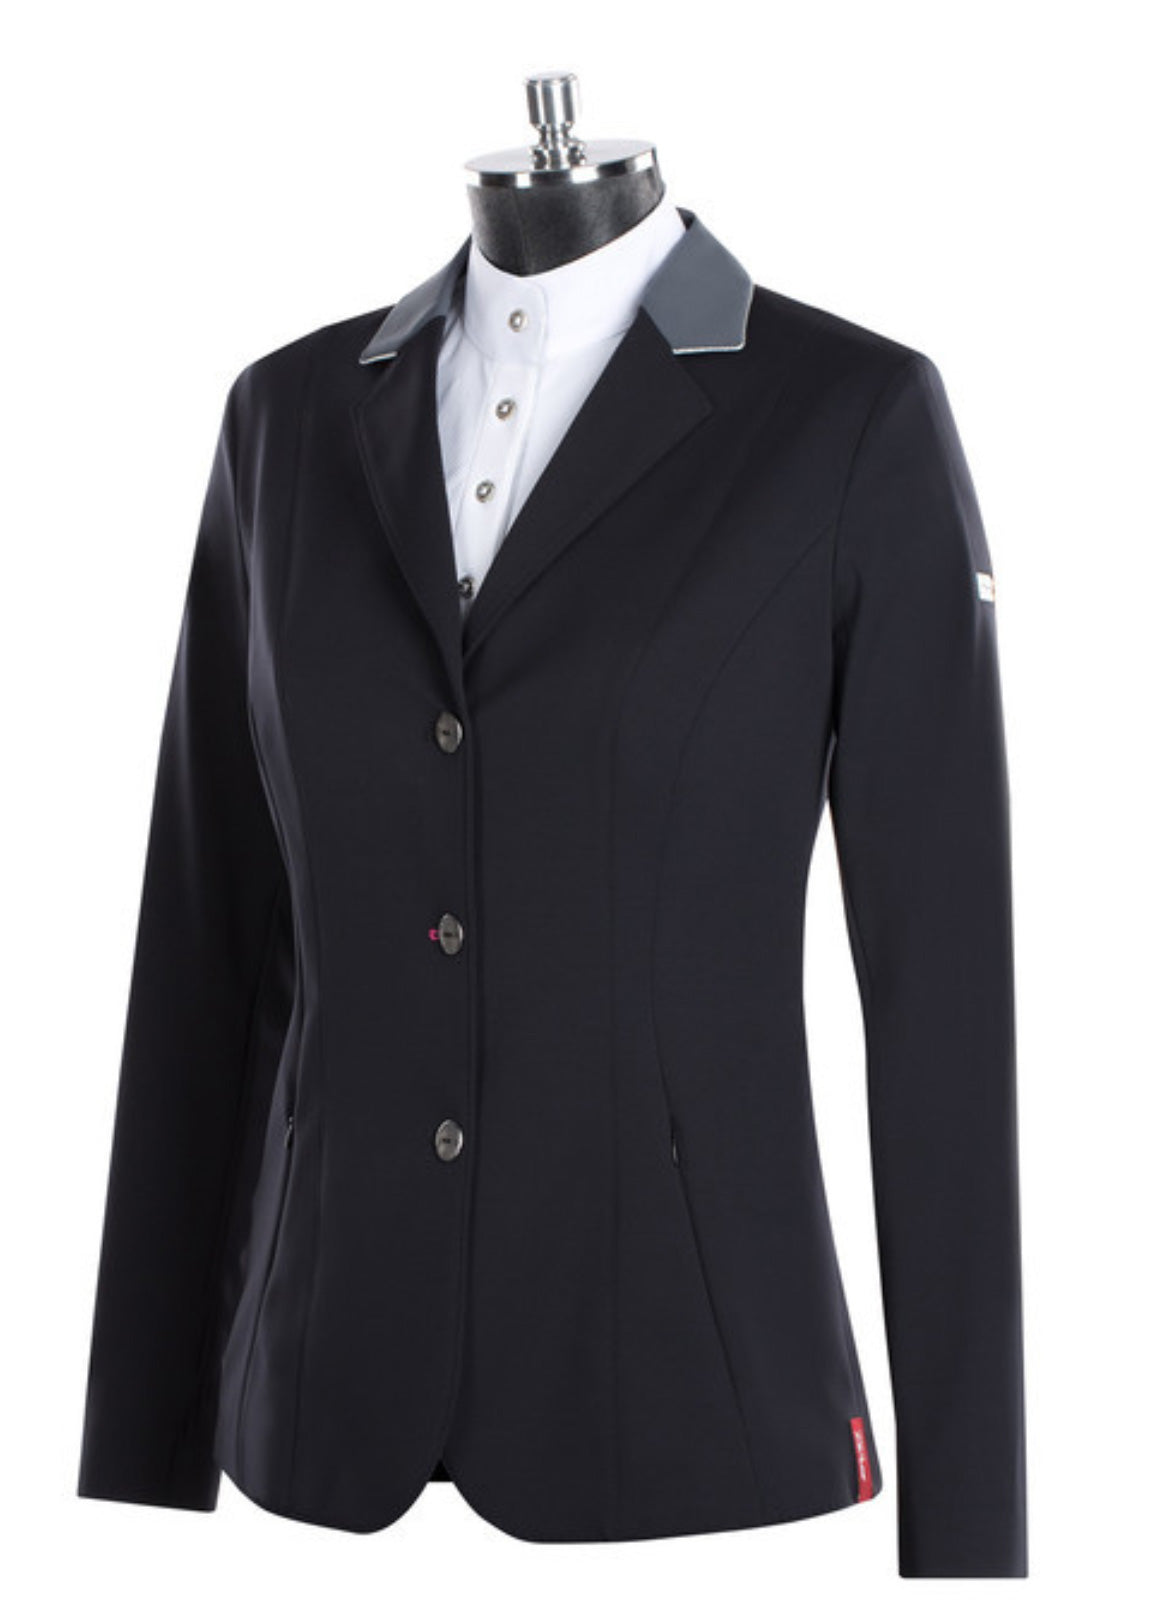 Animo Show Coat Linosa Green with Grey Collar and Metalic Piping - Luxe EQ